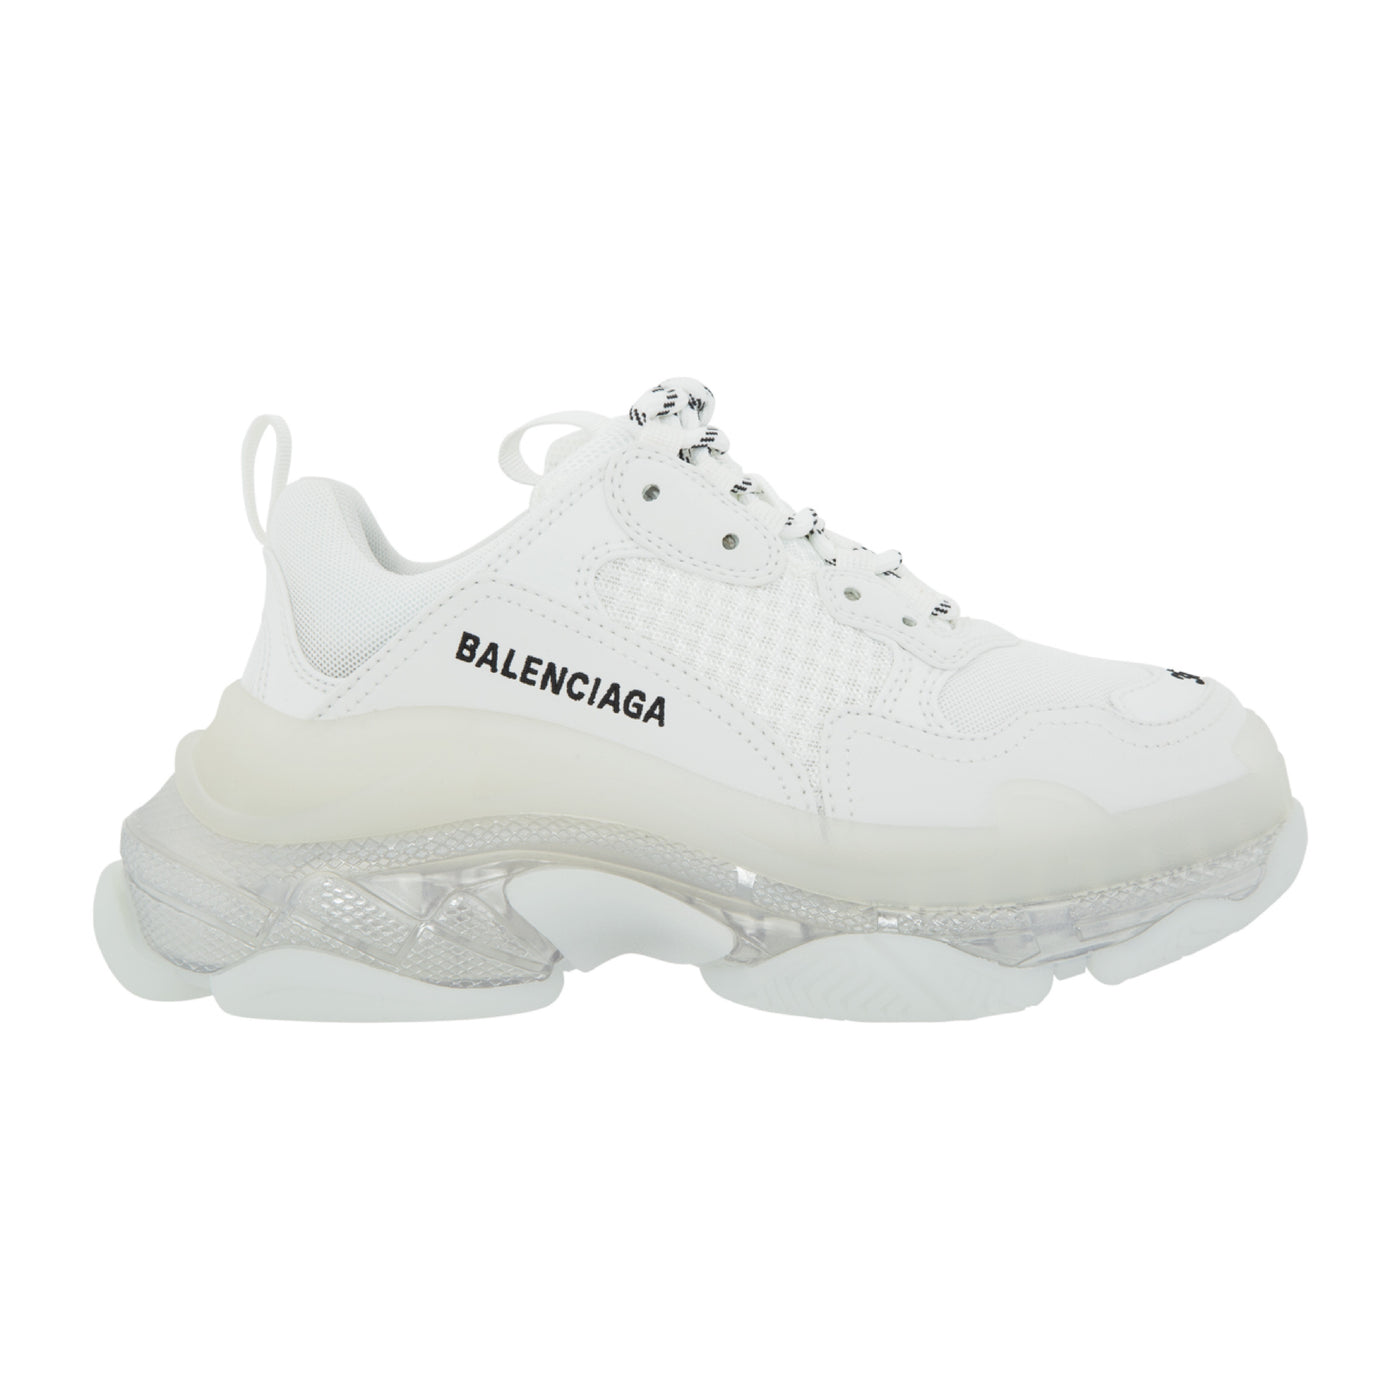 Load image into Gallery viewer, BALENCIAGA TRIPLE S CLEAR SOLE WHITE